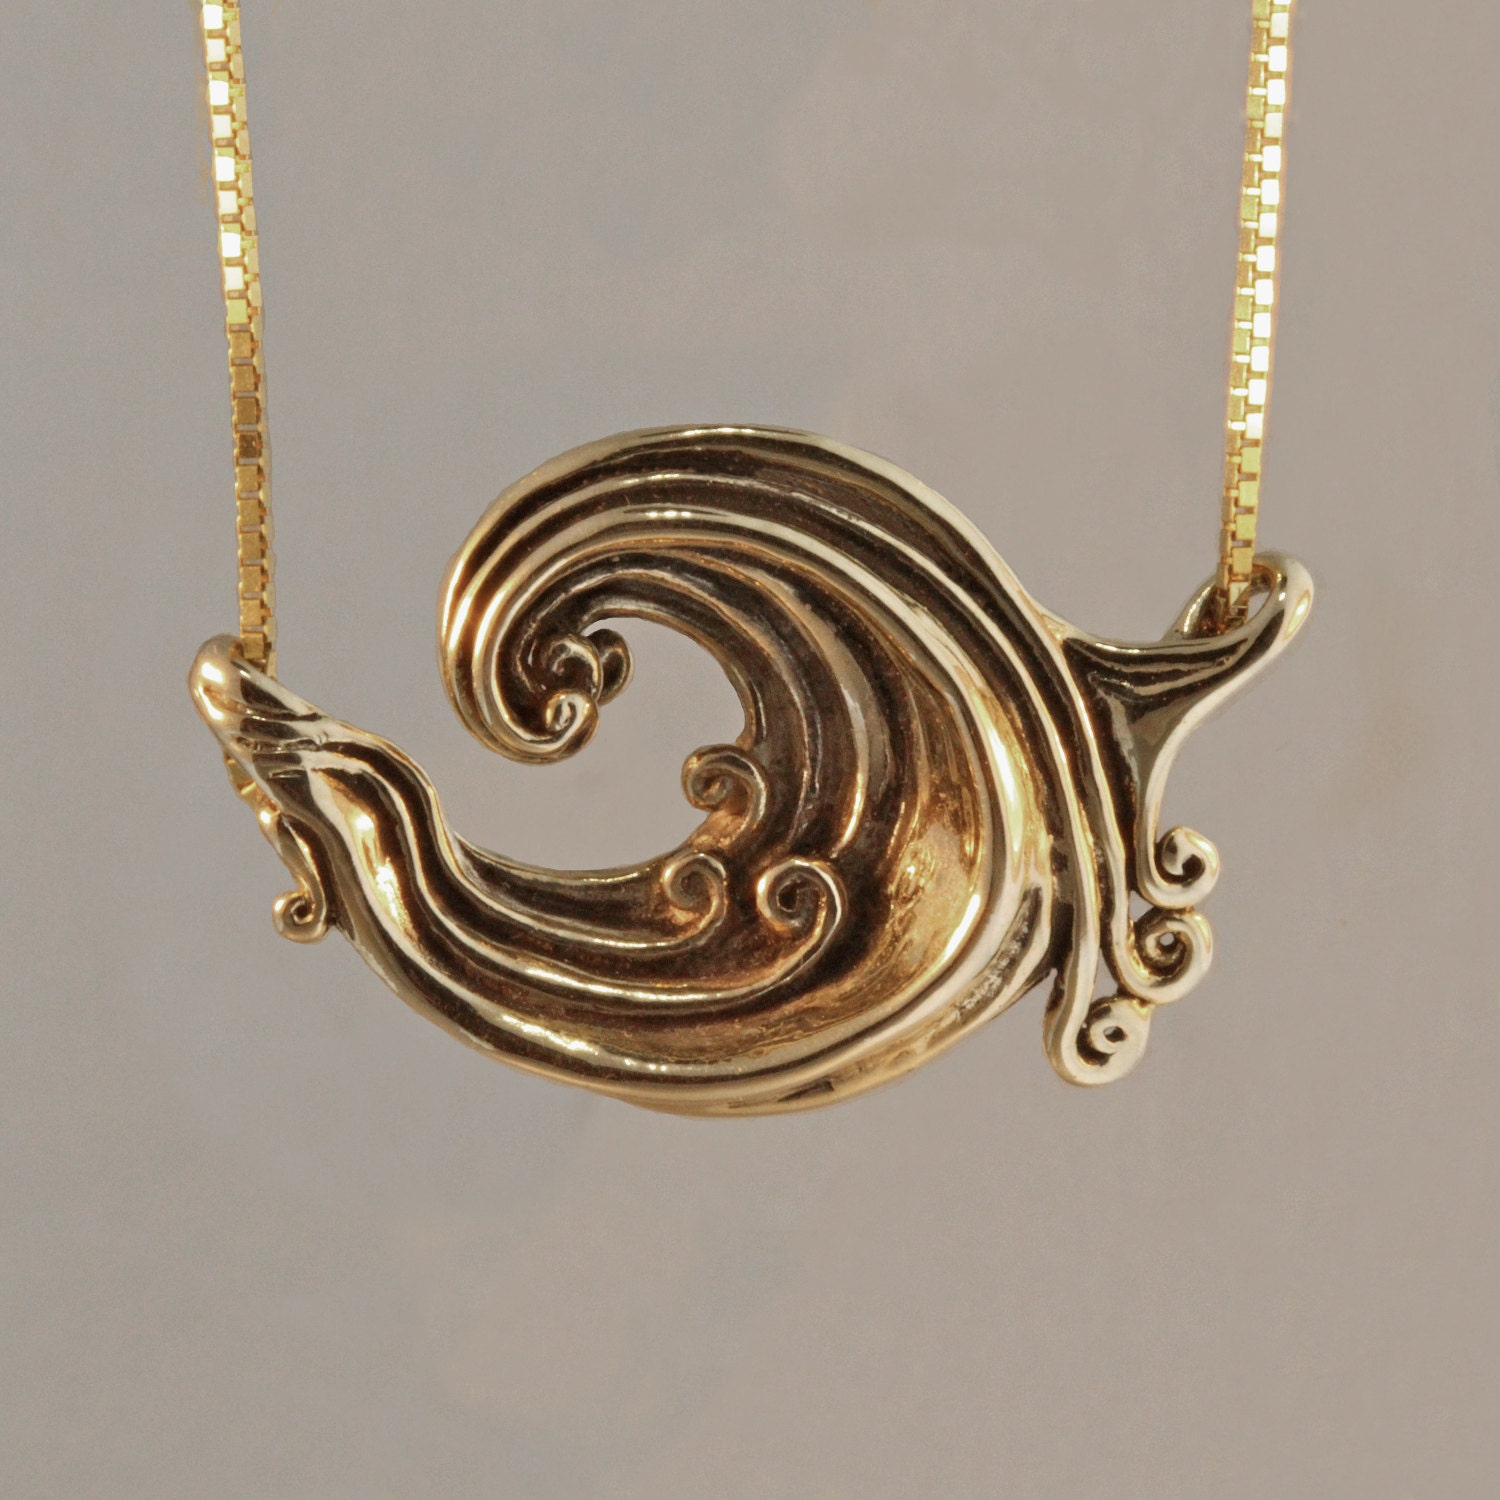 salty products the product wave ocean pendant image necklace